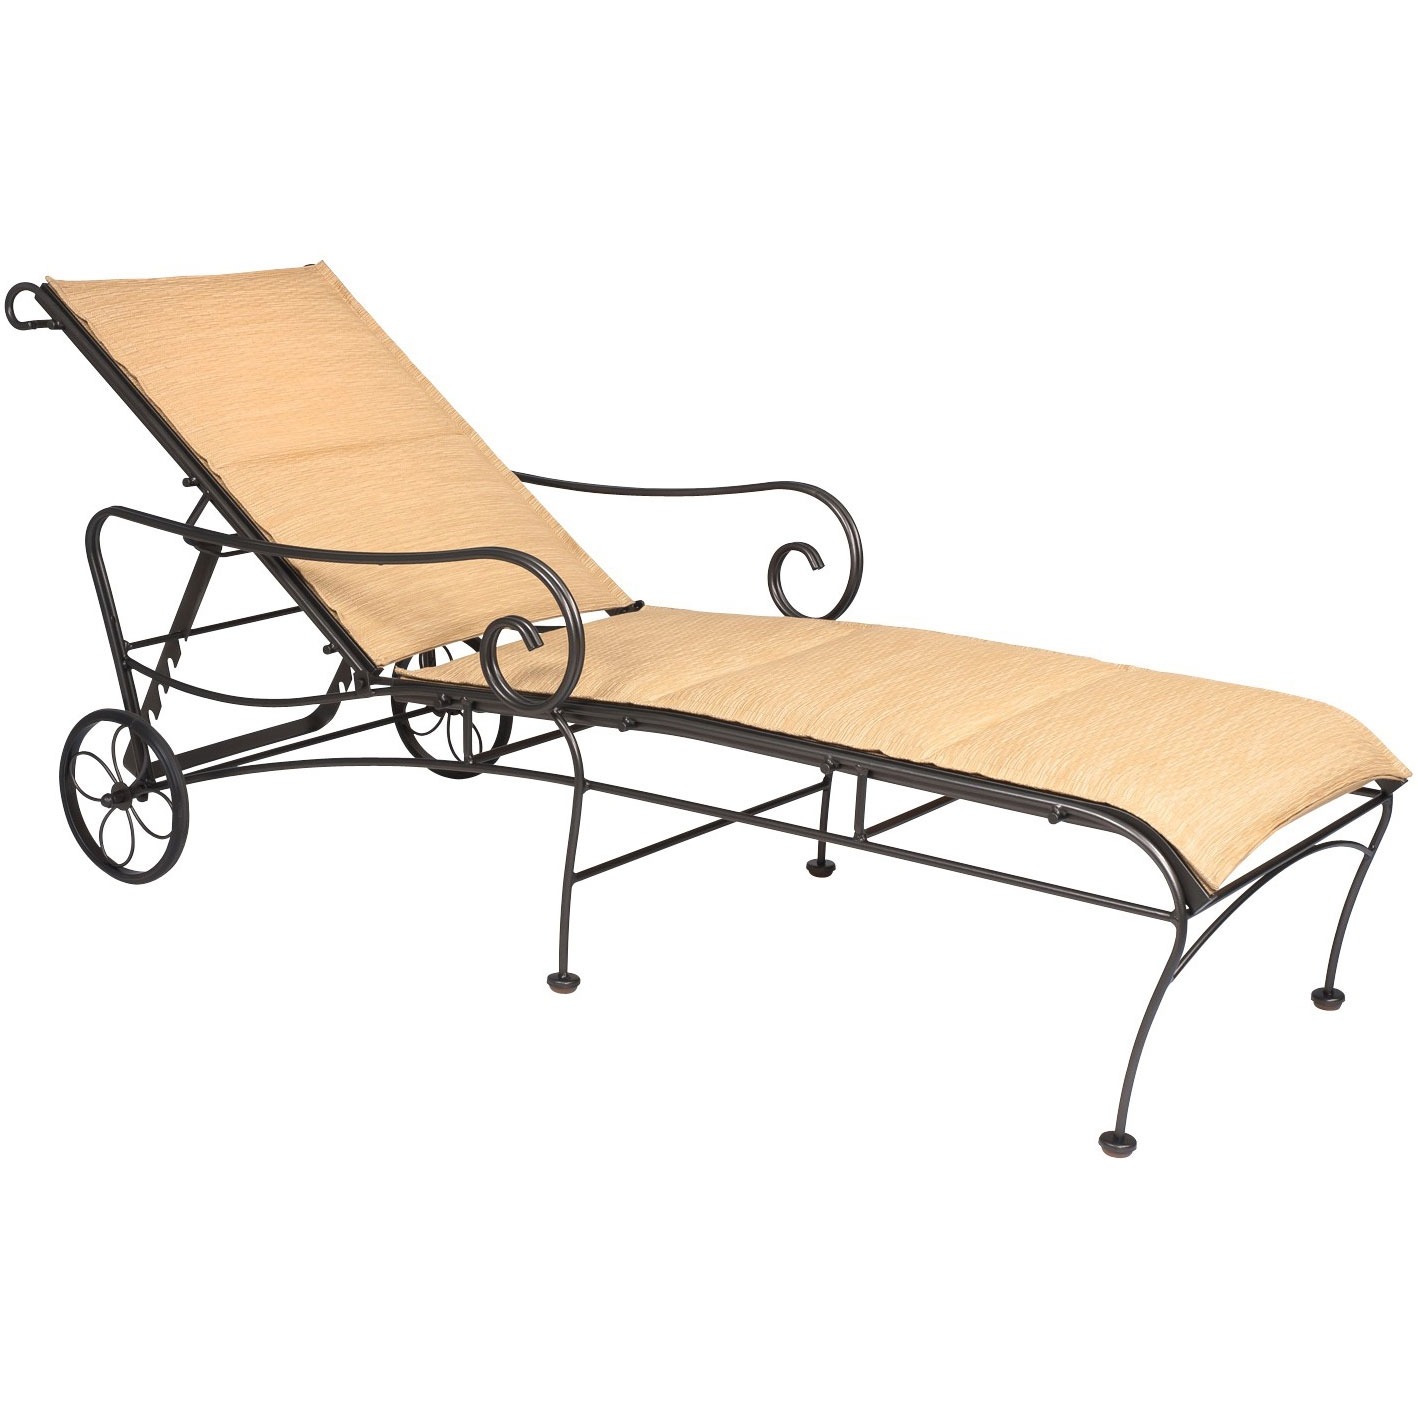 Buy the terrace padded sling adjustable chaise lounge for for Black wrought iron chaise lounge